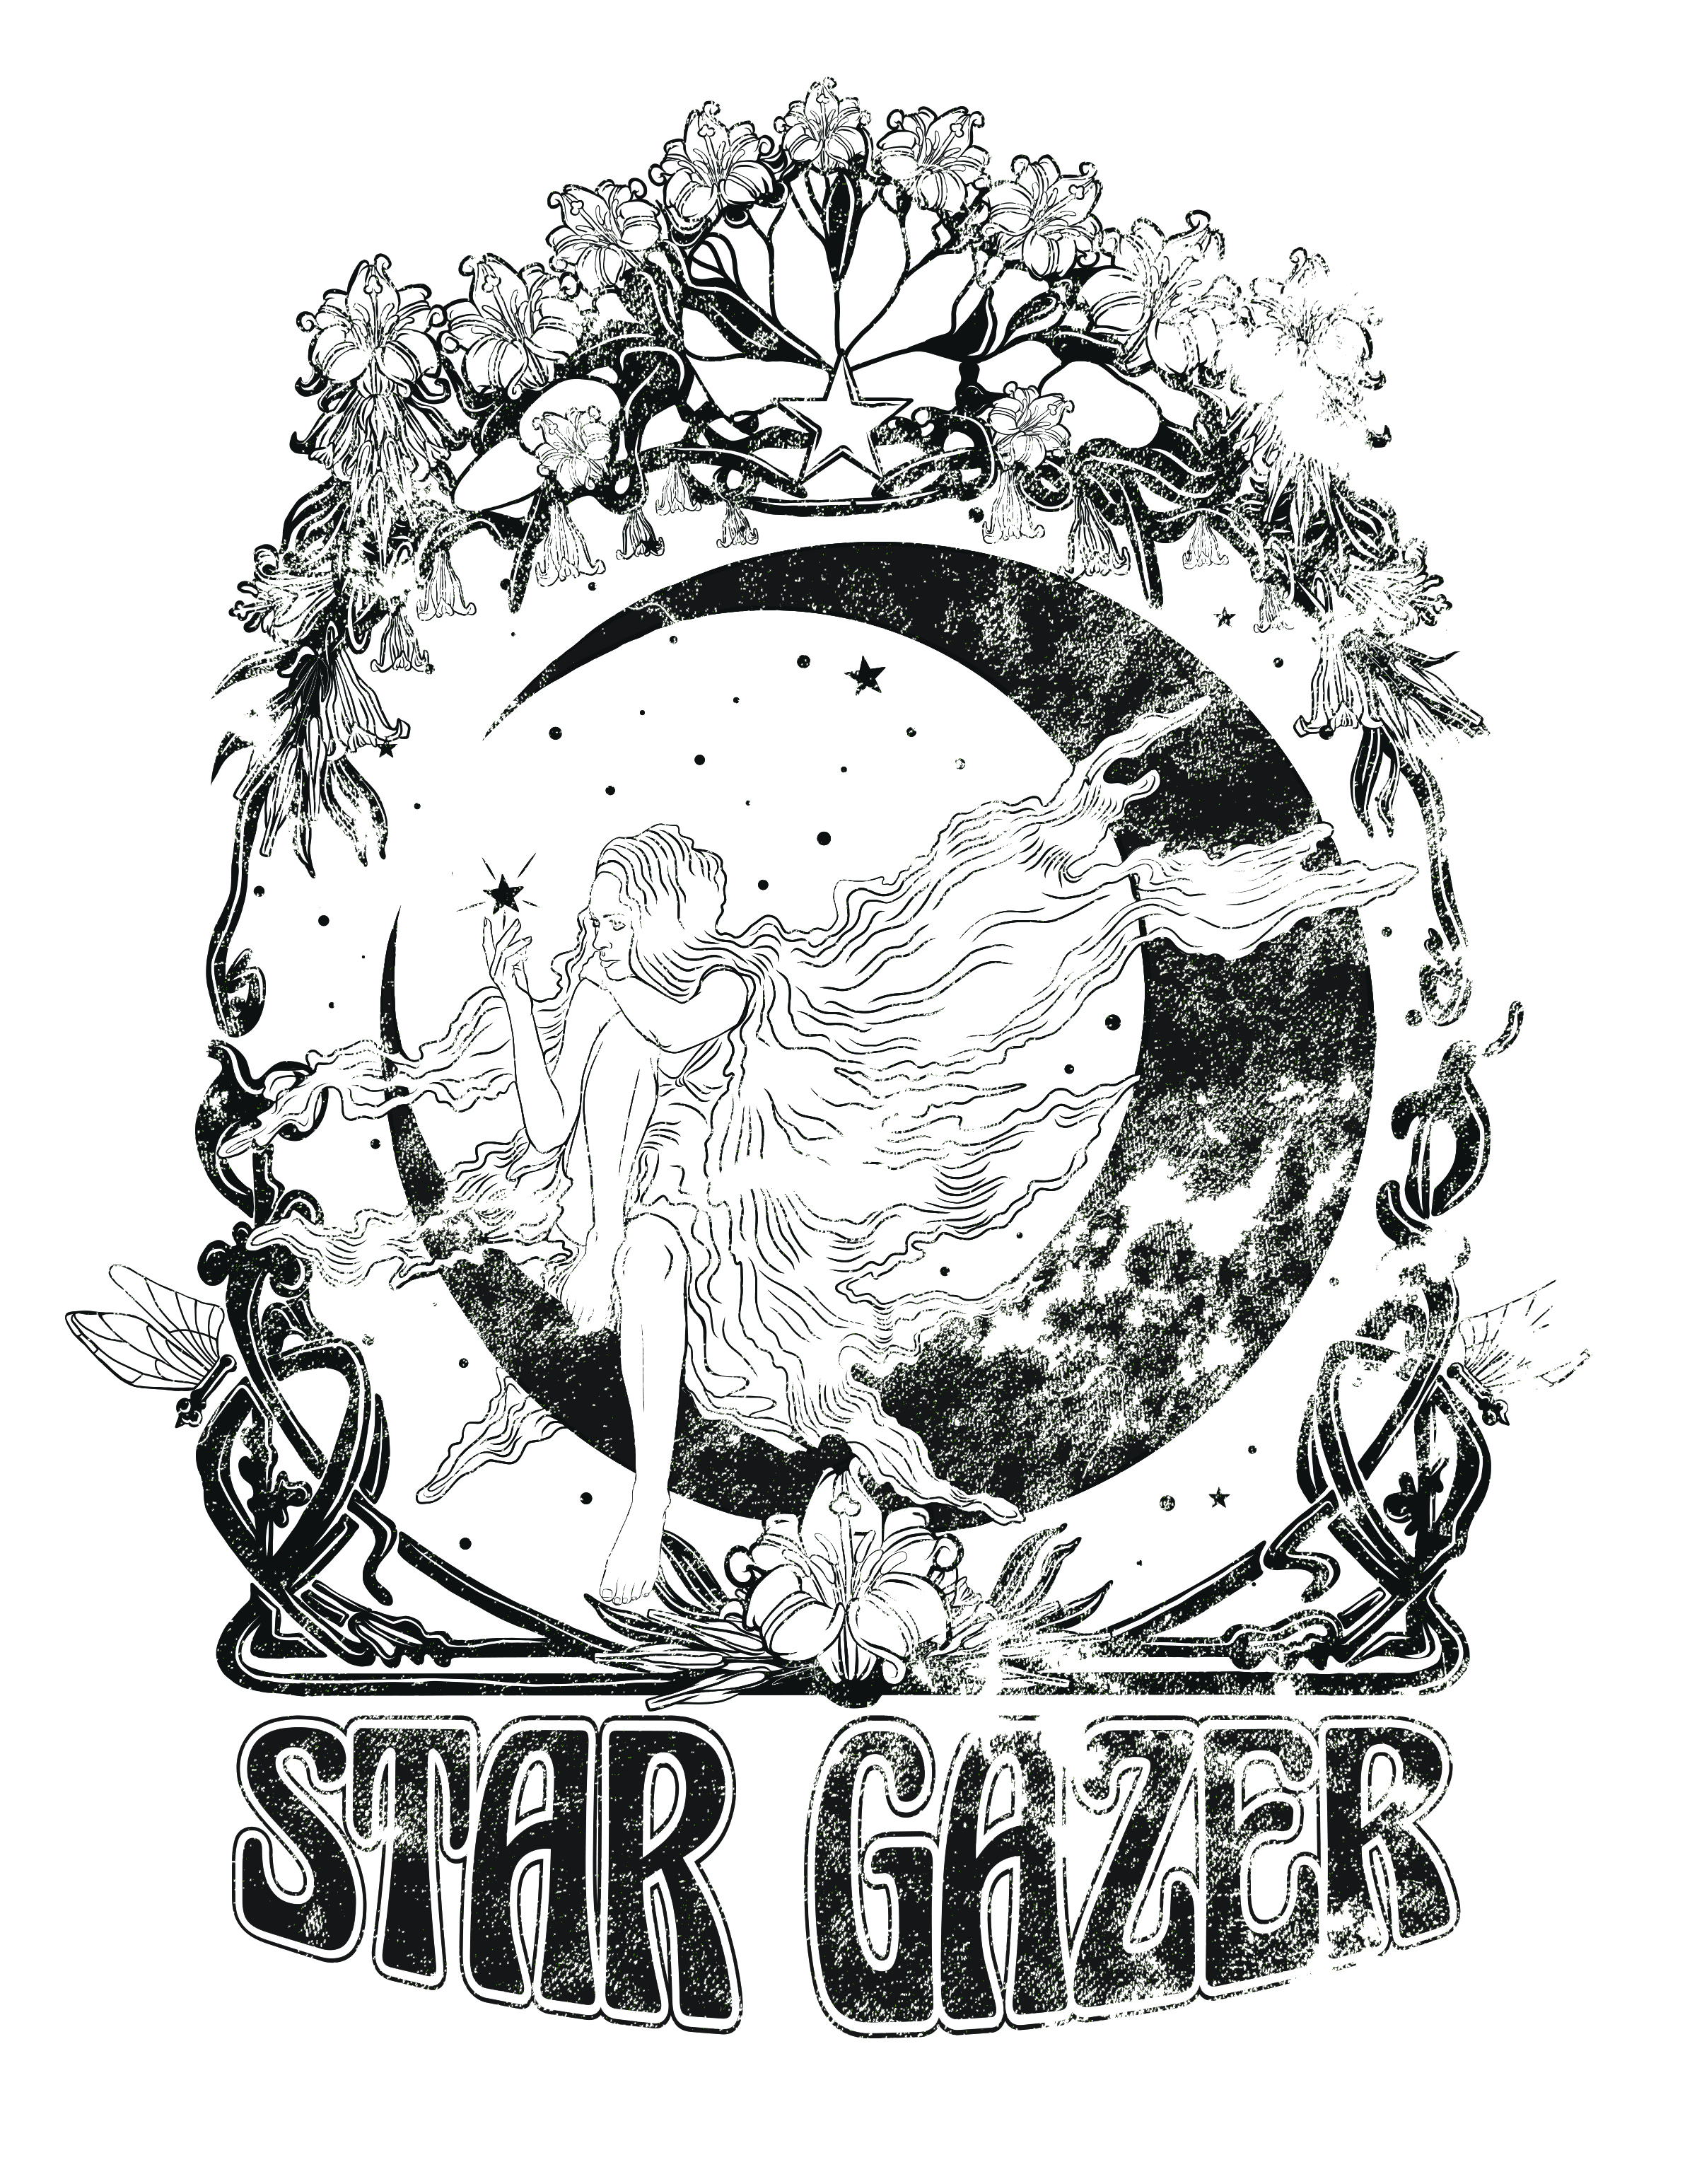 Star gazer tee_with_distressing2flat.jpg